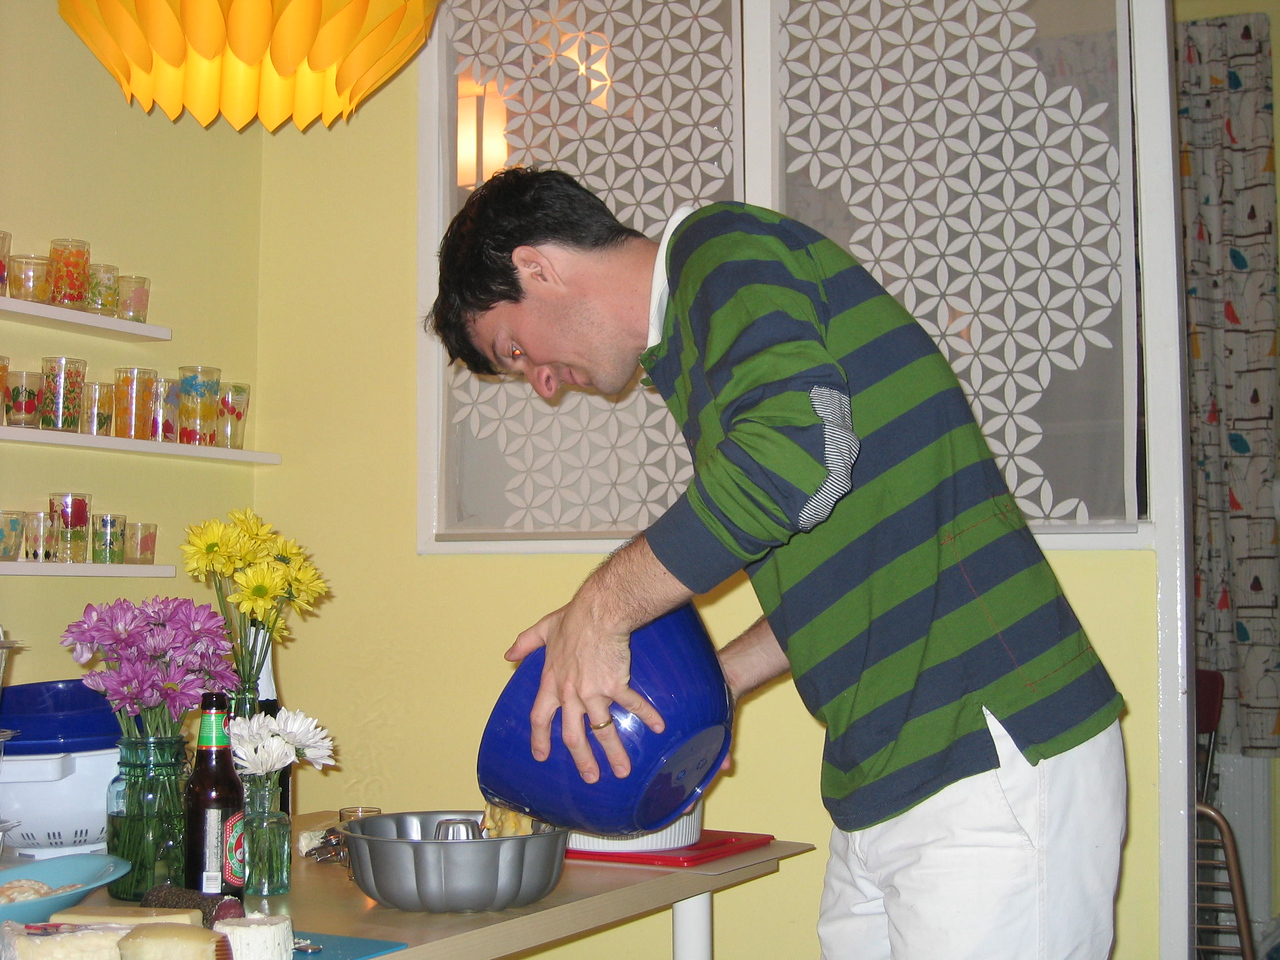 Christian preparing his speciality, corn pudding. What's that you ask? Good question...